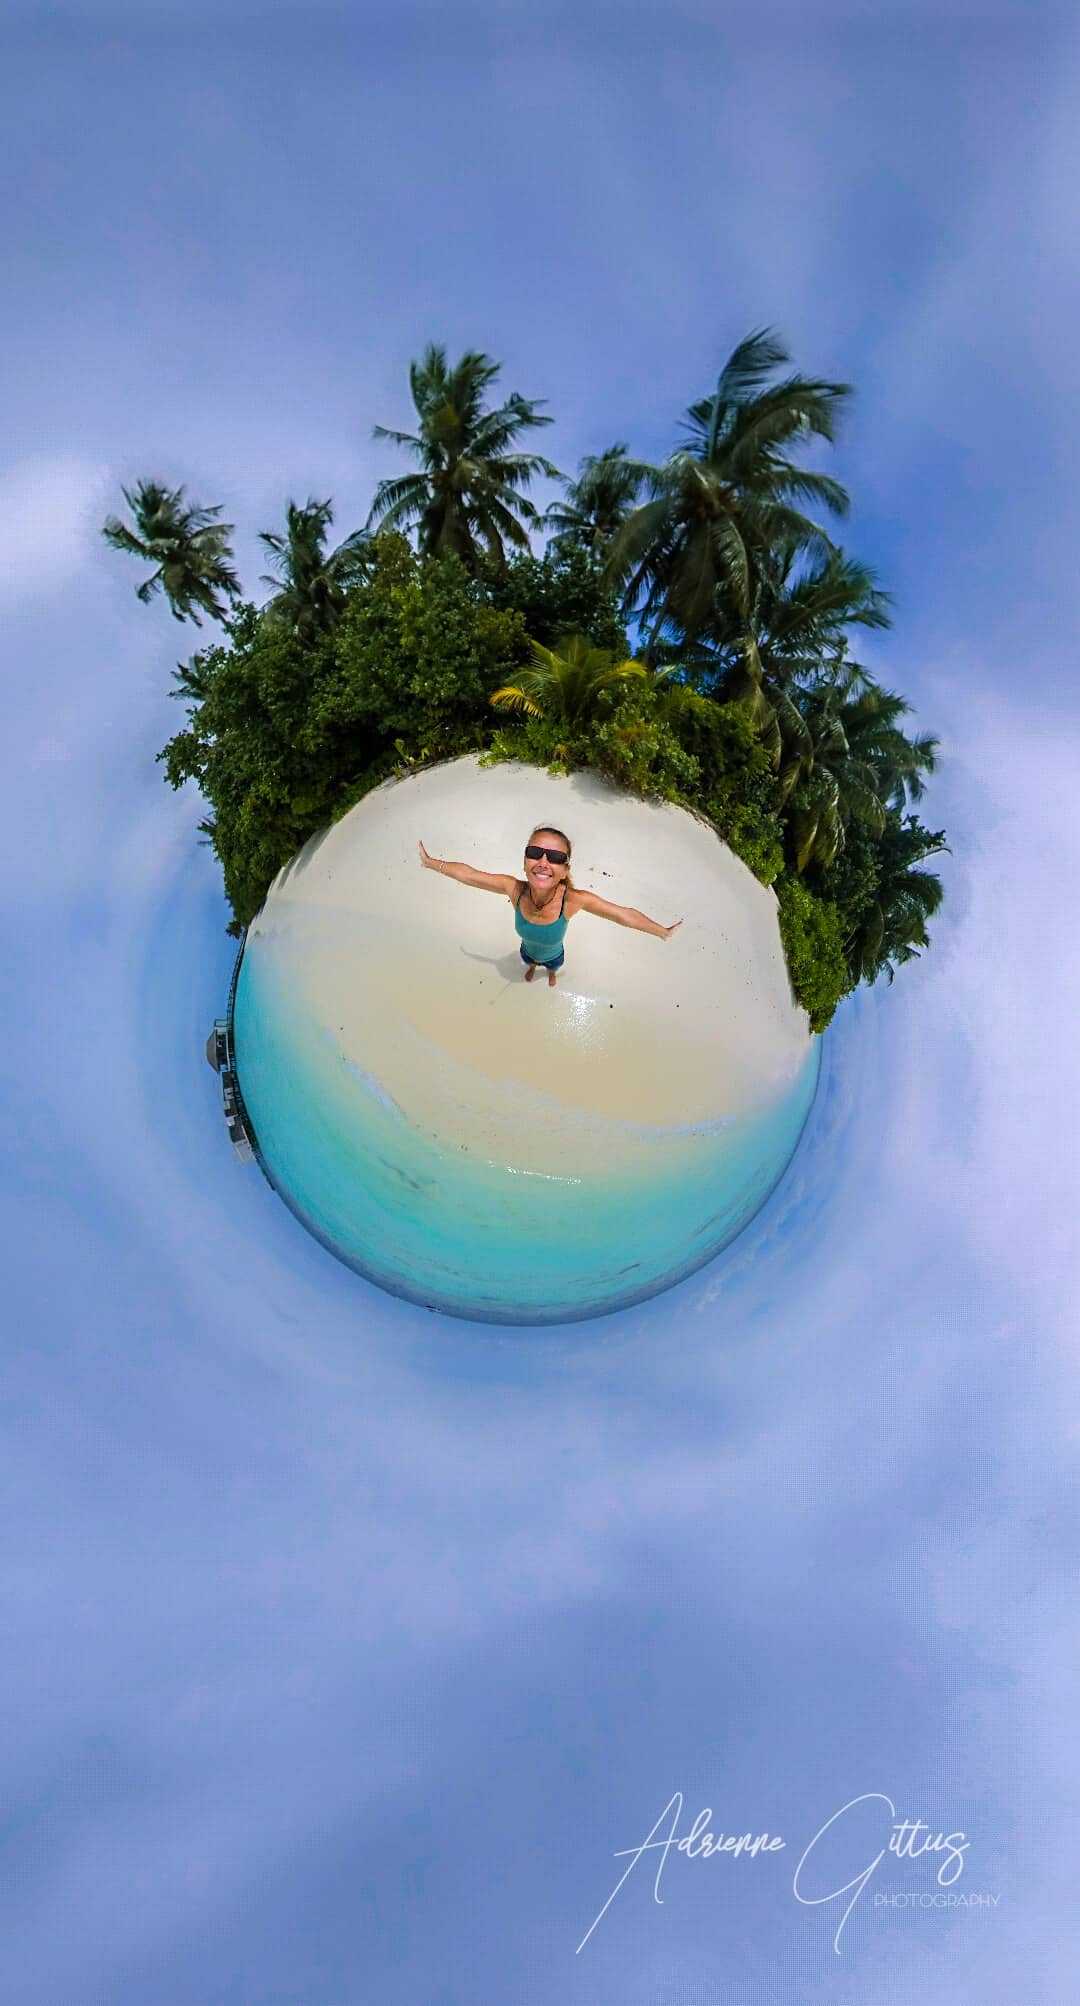 Can't beat a tropical island paradise, 36 tiny planet, white sandy beach, blue water, palm trees